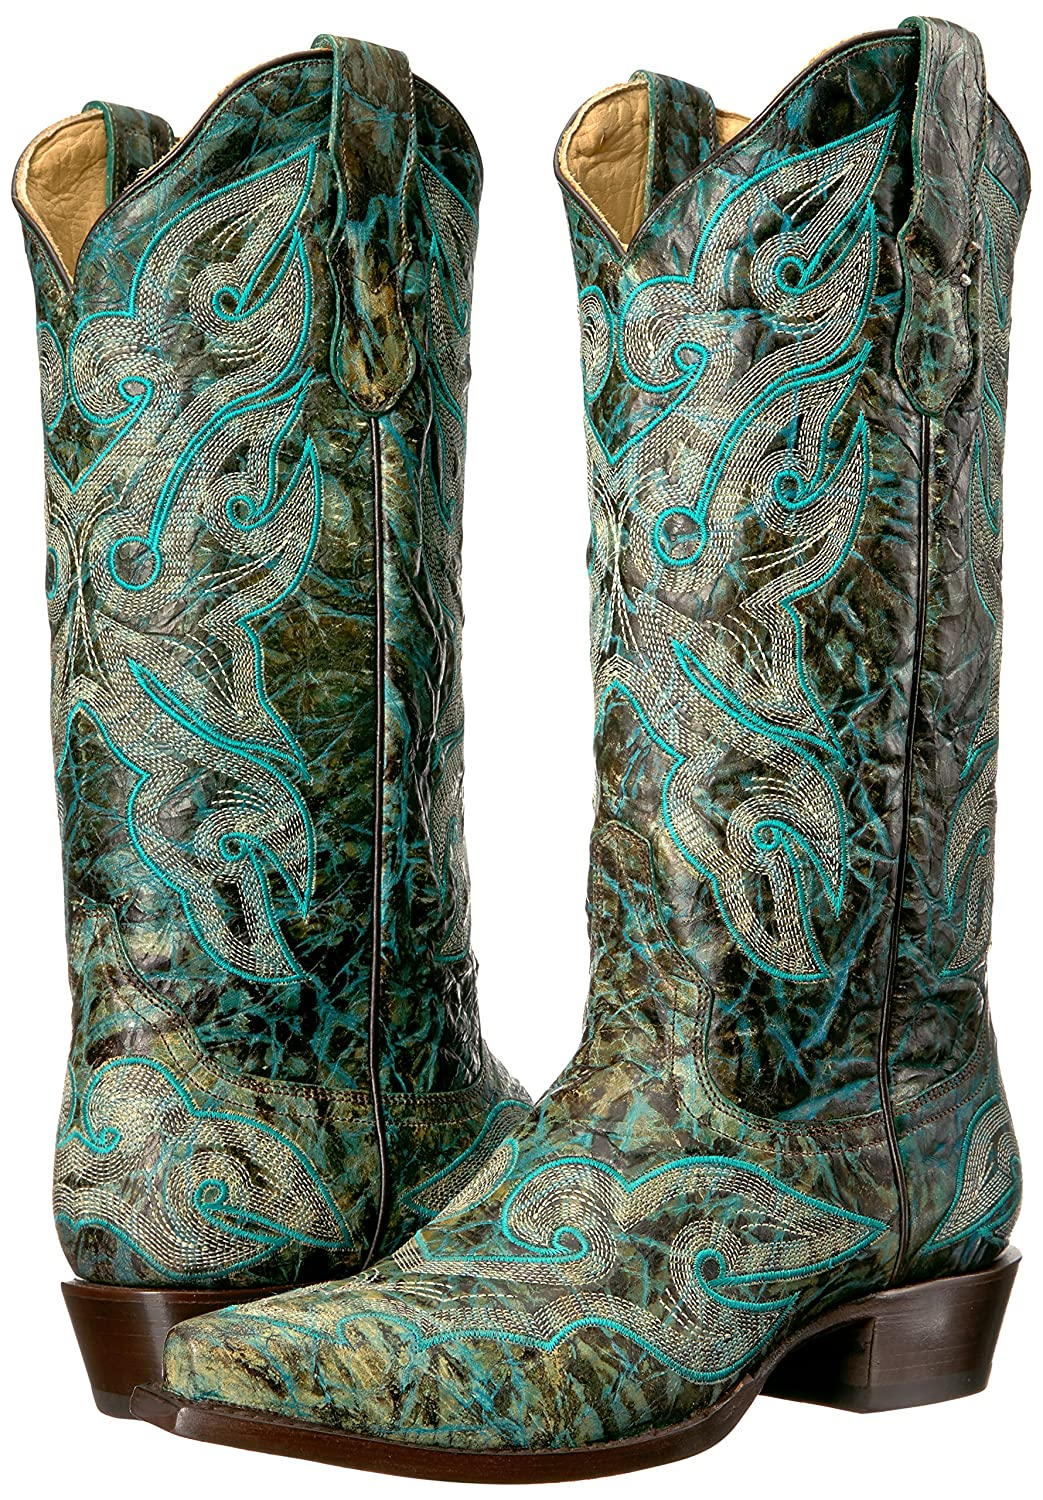 Stetson Boot Women's Vintage Work Boot Stetson B00U9Y6CLI 7 D US|Green a38c13